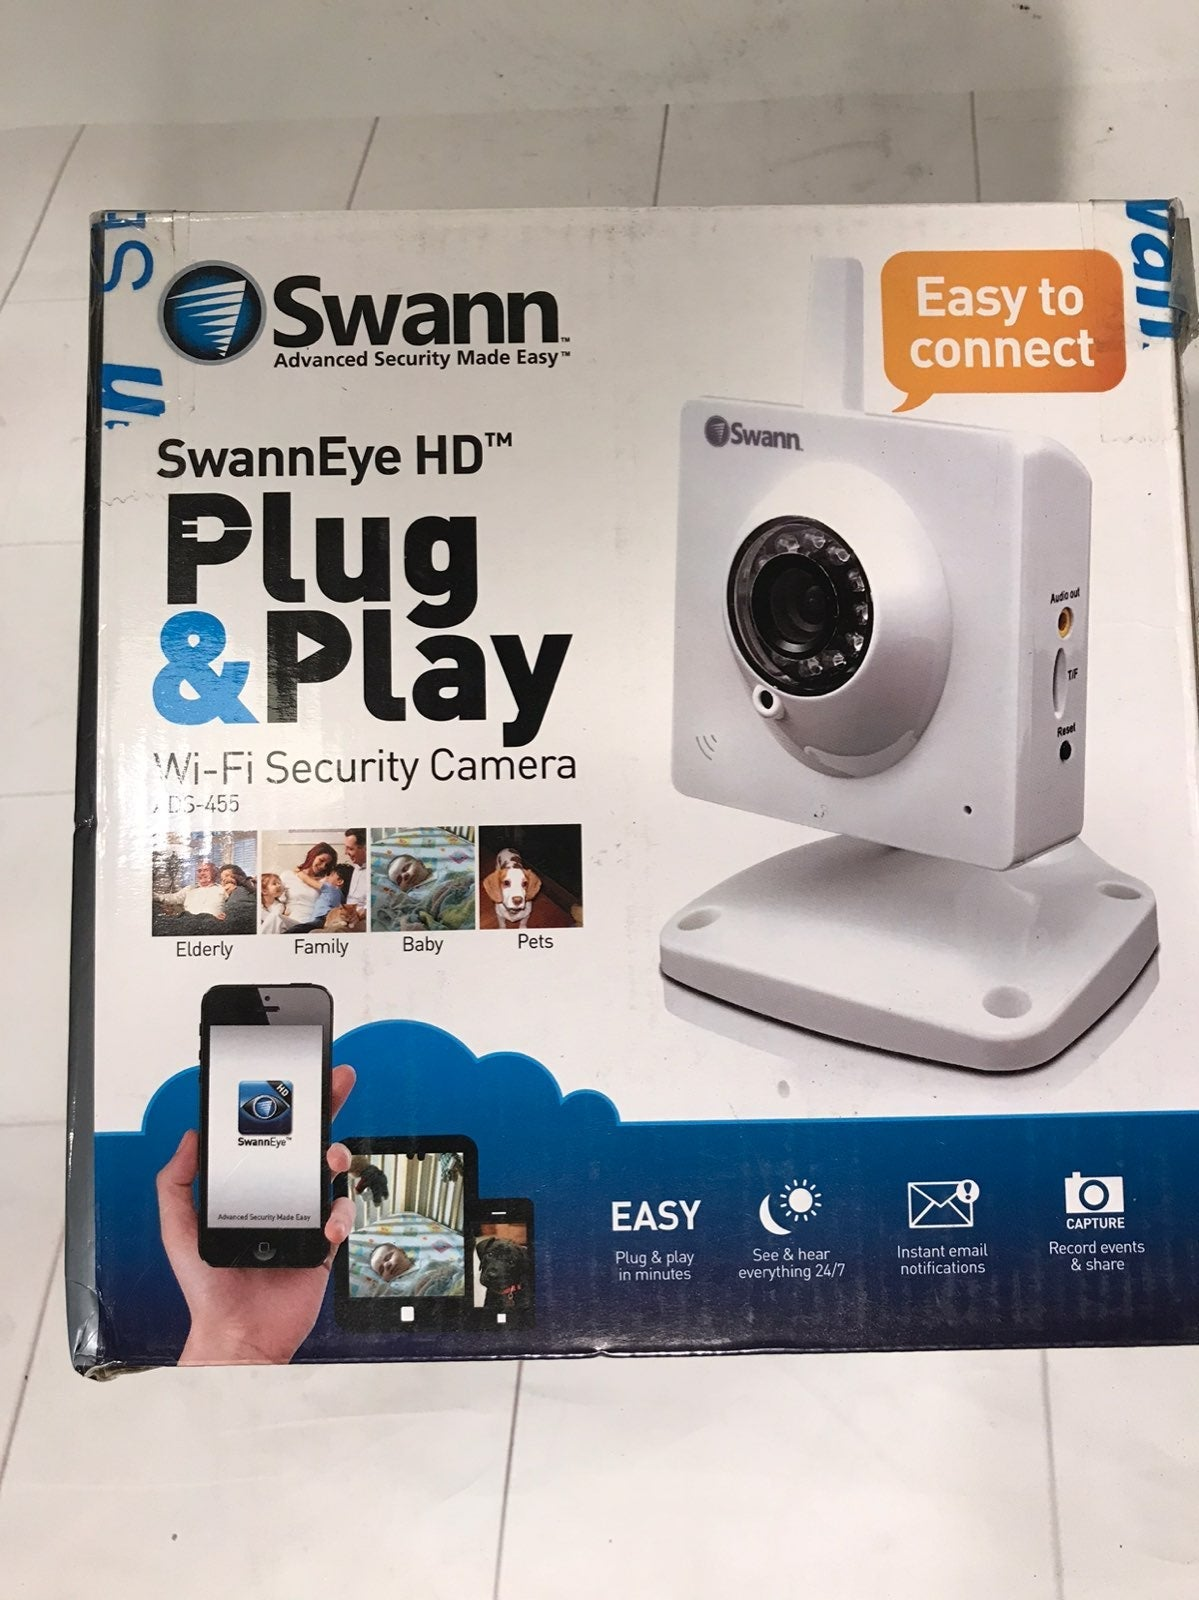 Swann Plug & Play Wi-Fi Security Camera